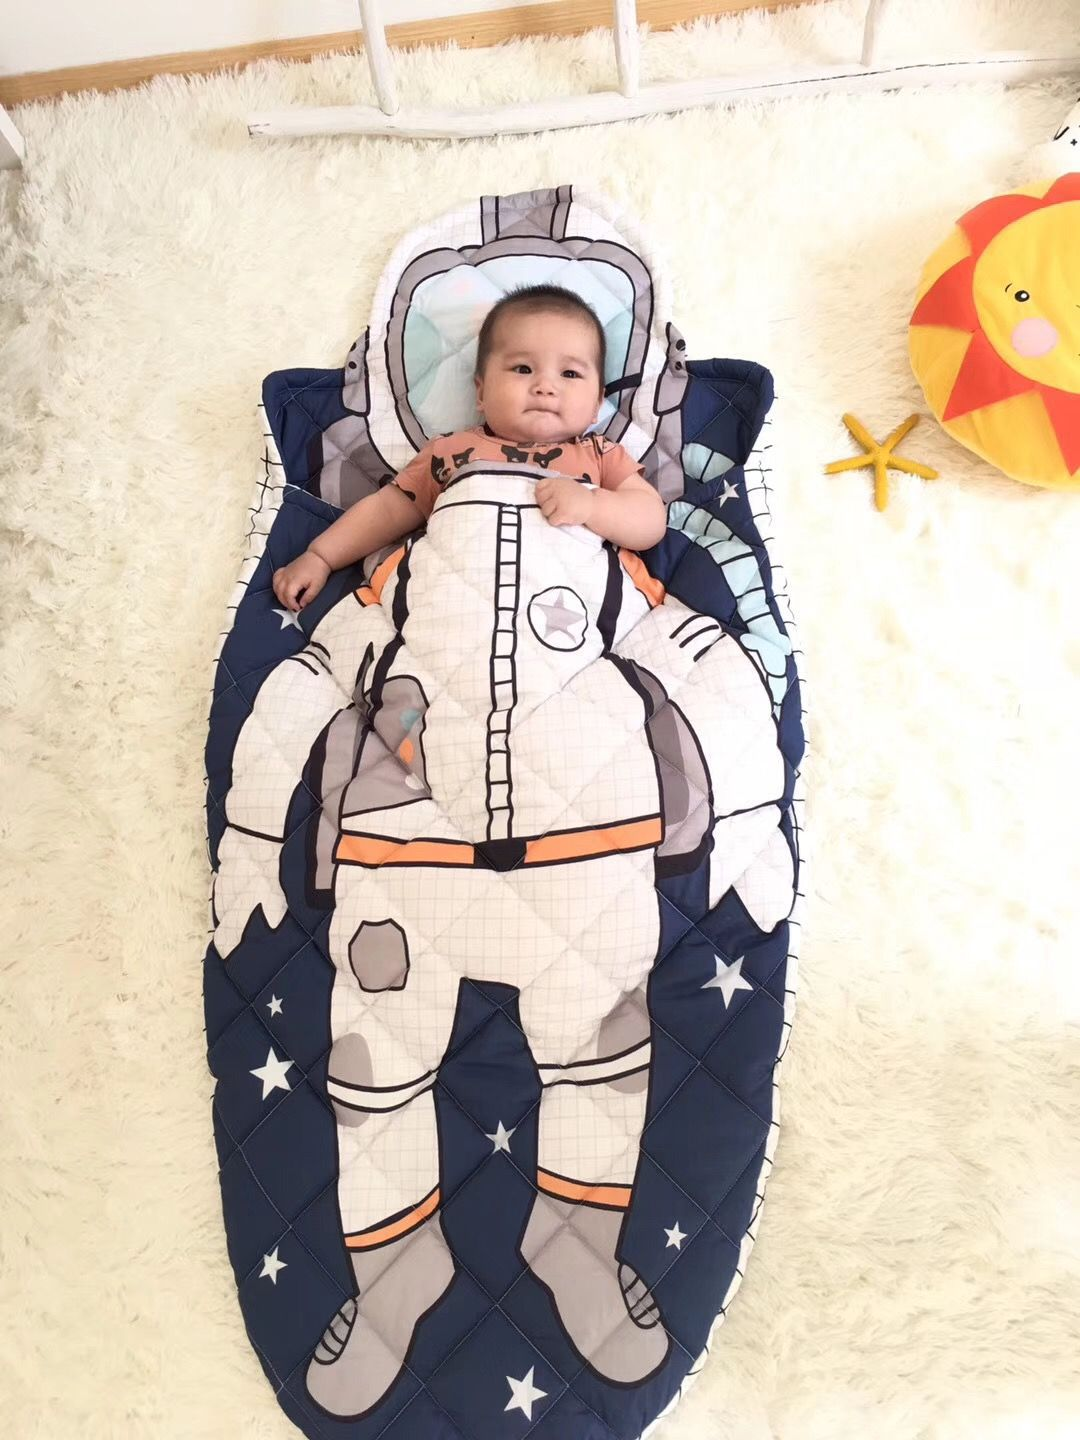 Cotton Baby Sleeping Bag Us 40 500g Pure Cotton Baby Sleeping Bag High Quality Astronaut Boy Girl Children S Style Sleeping Bag Baby Bed In Sleepsacks From Mother Kids